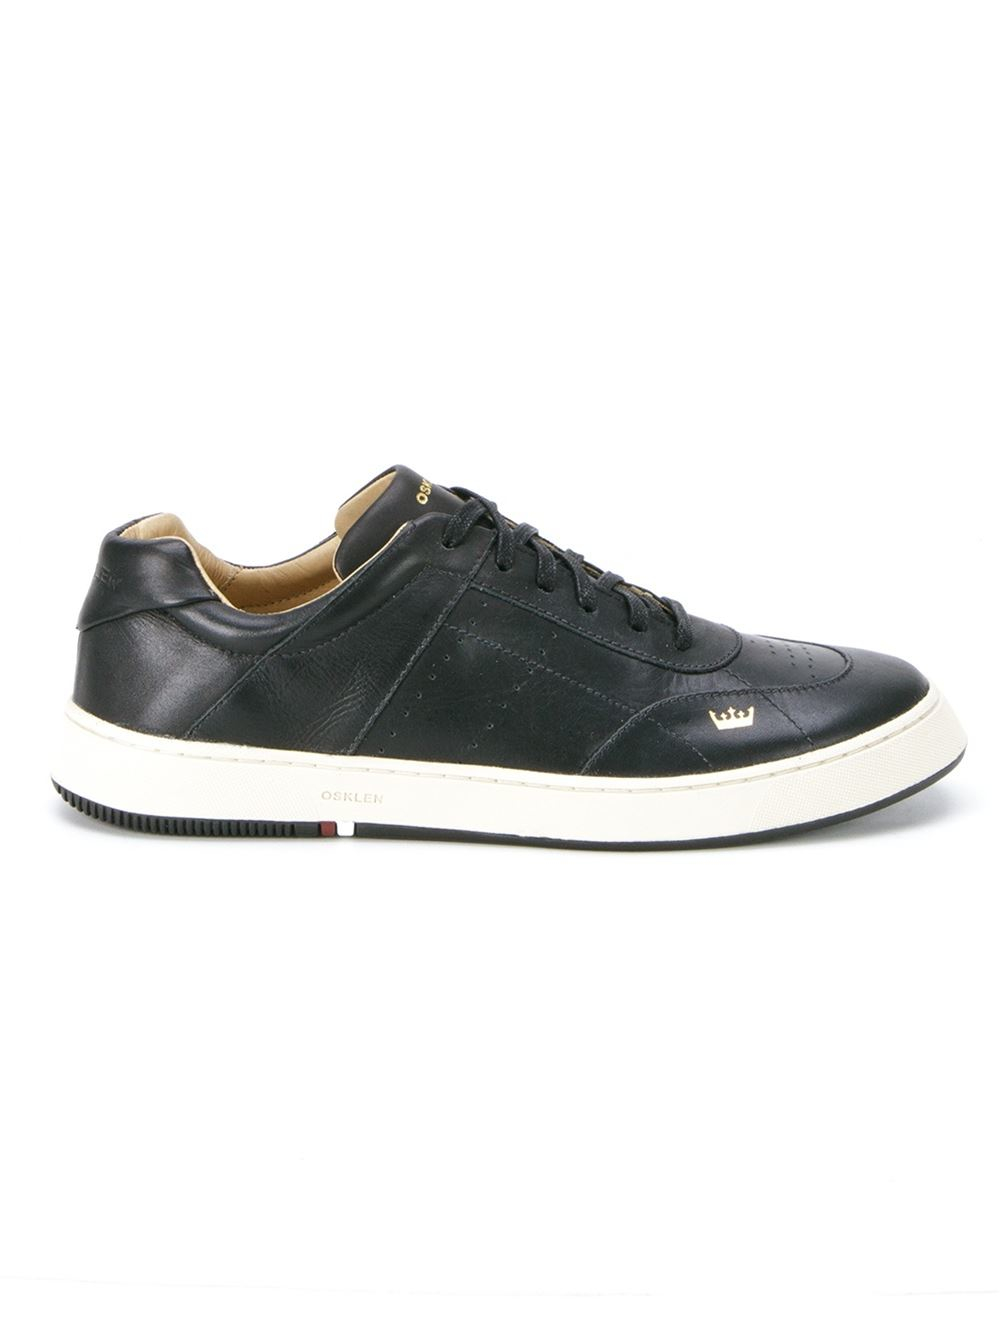 Osklen Panelled Sneakers In Black For Men Save 50 Lyst